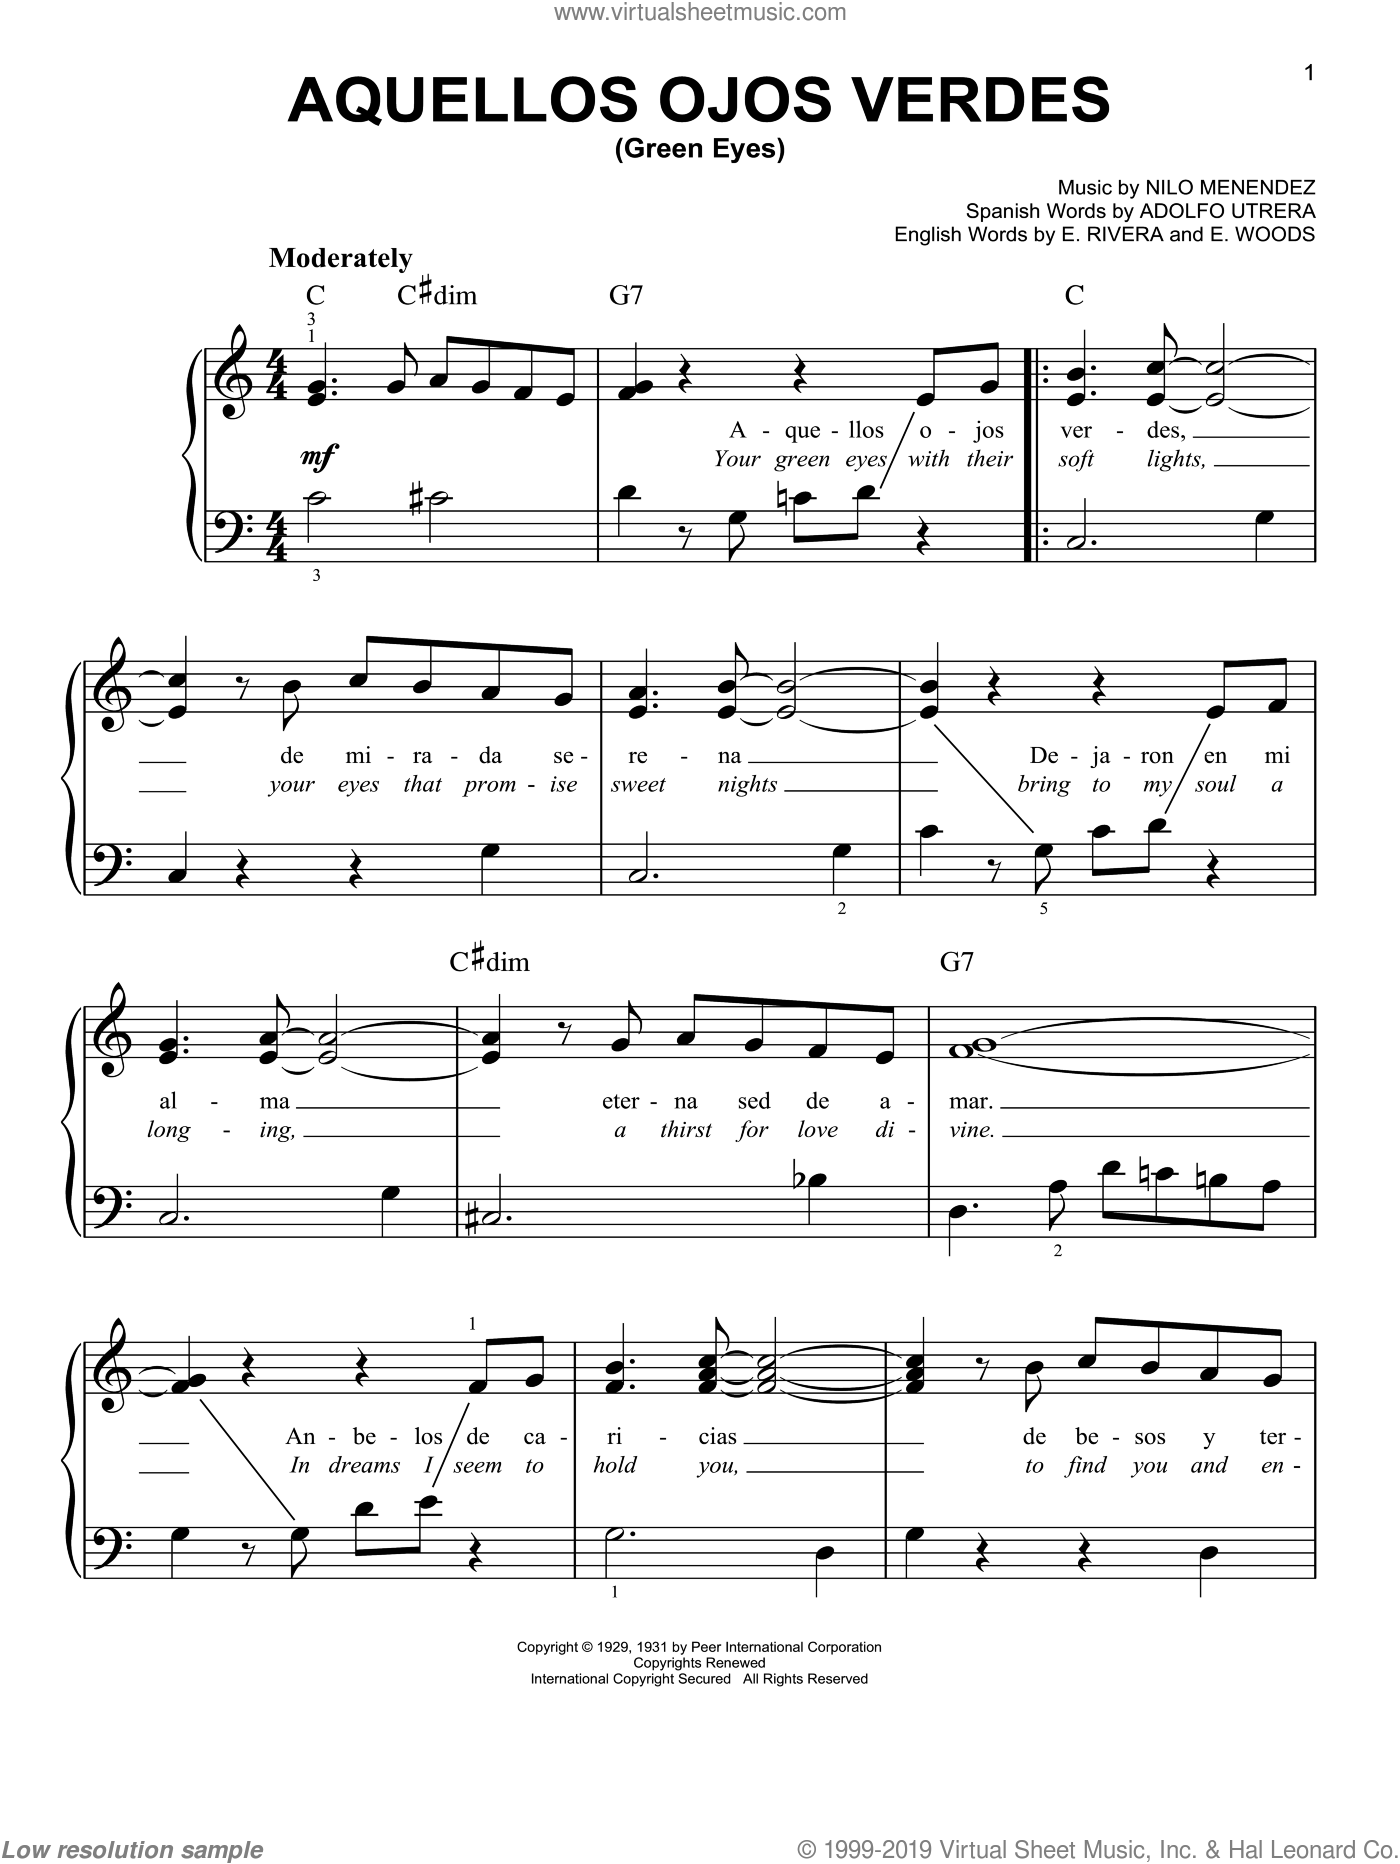 Aquellos Ojos Verdes (Green Eyes) sheet music for piano solo (chords) by E. Woods